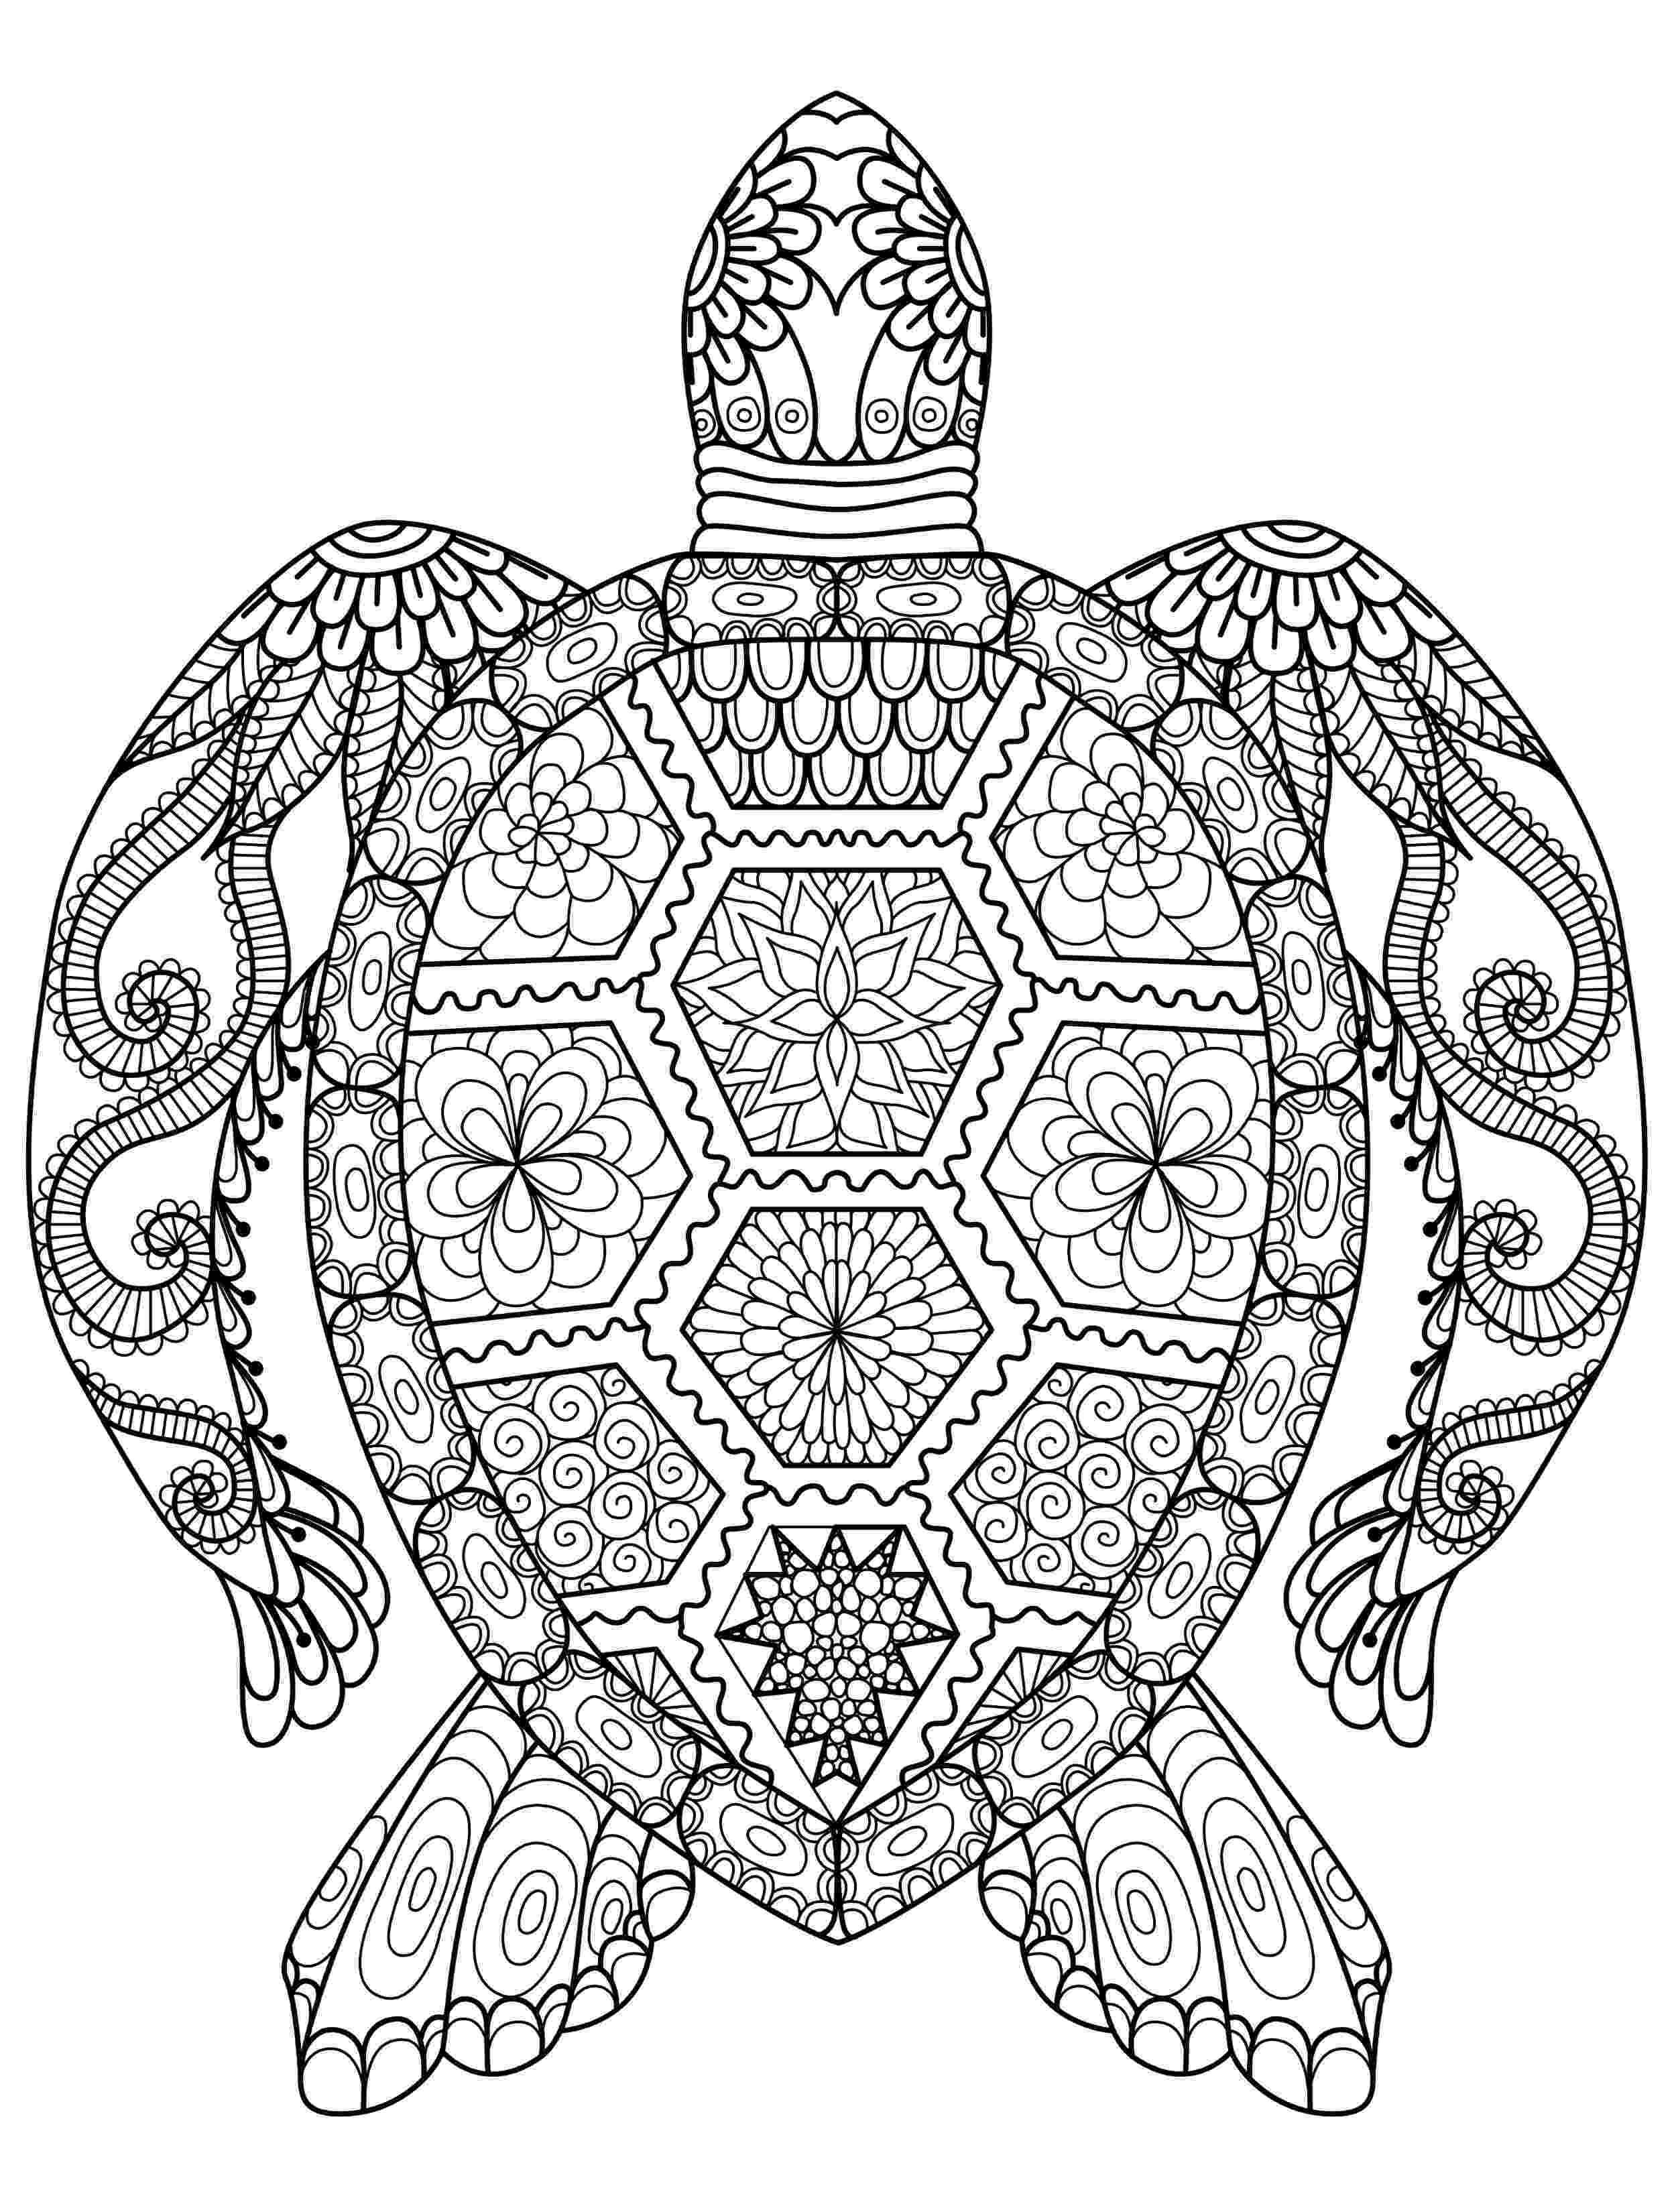 animal colouring pages free animal coloring pages for adults best coloring pages for pages colouring free animal